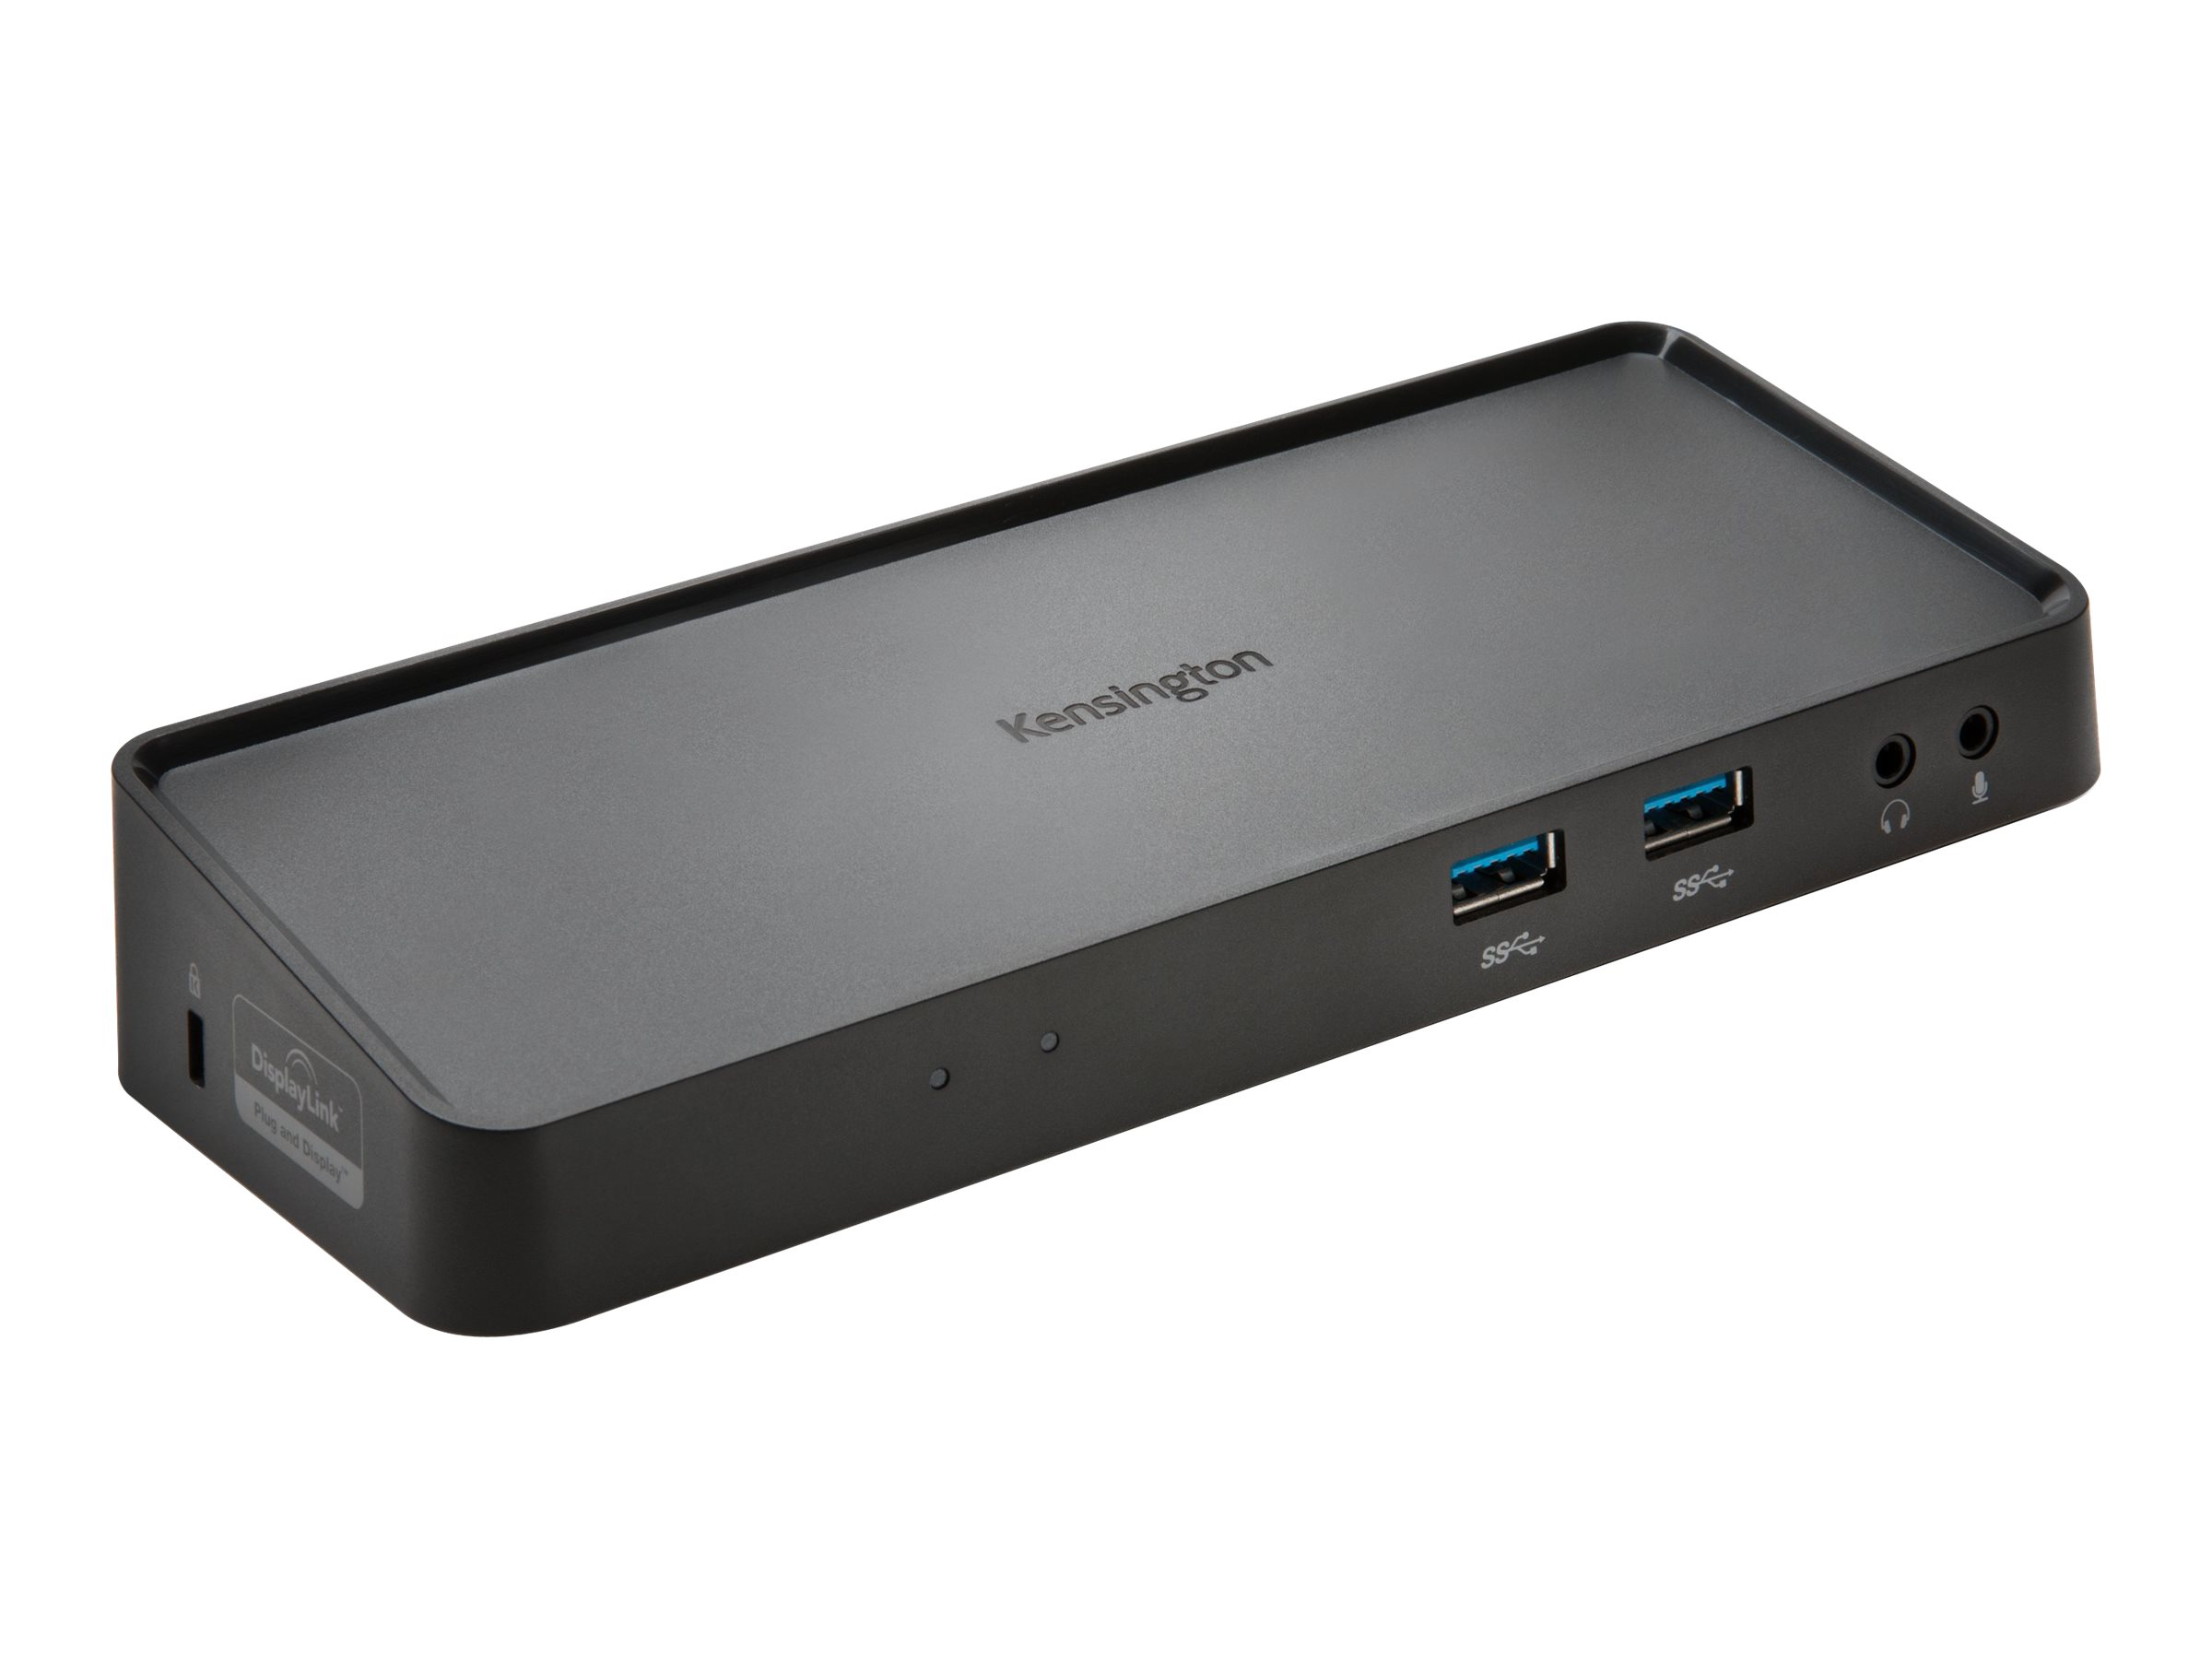 Kensington SD3600 Universal USB 3.0 Mountable Docking Station - Docking Station - (USB) - GigE